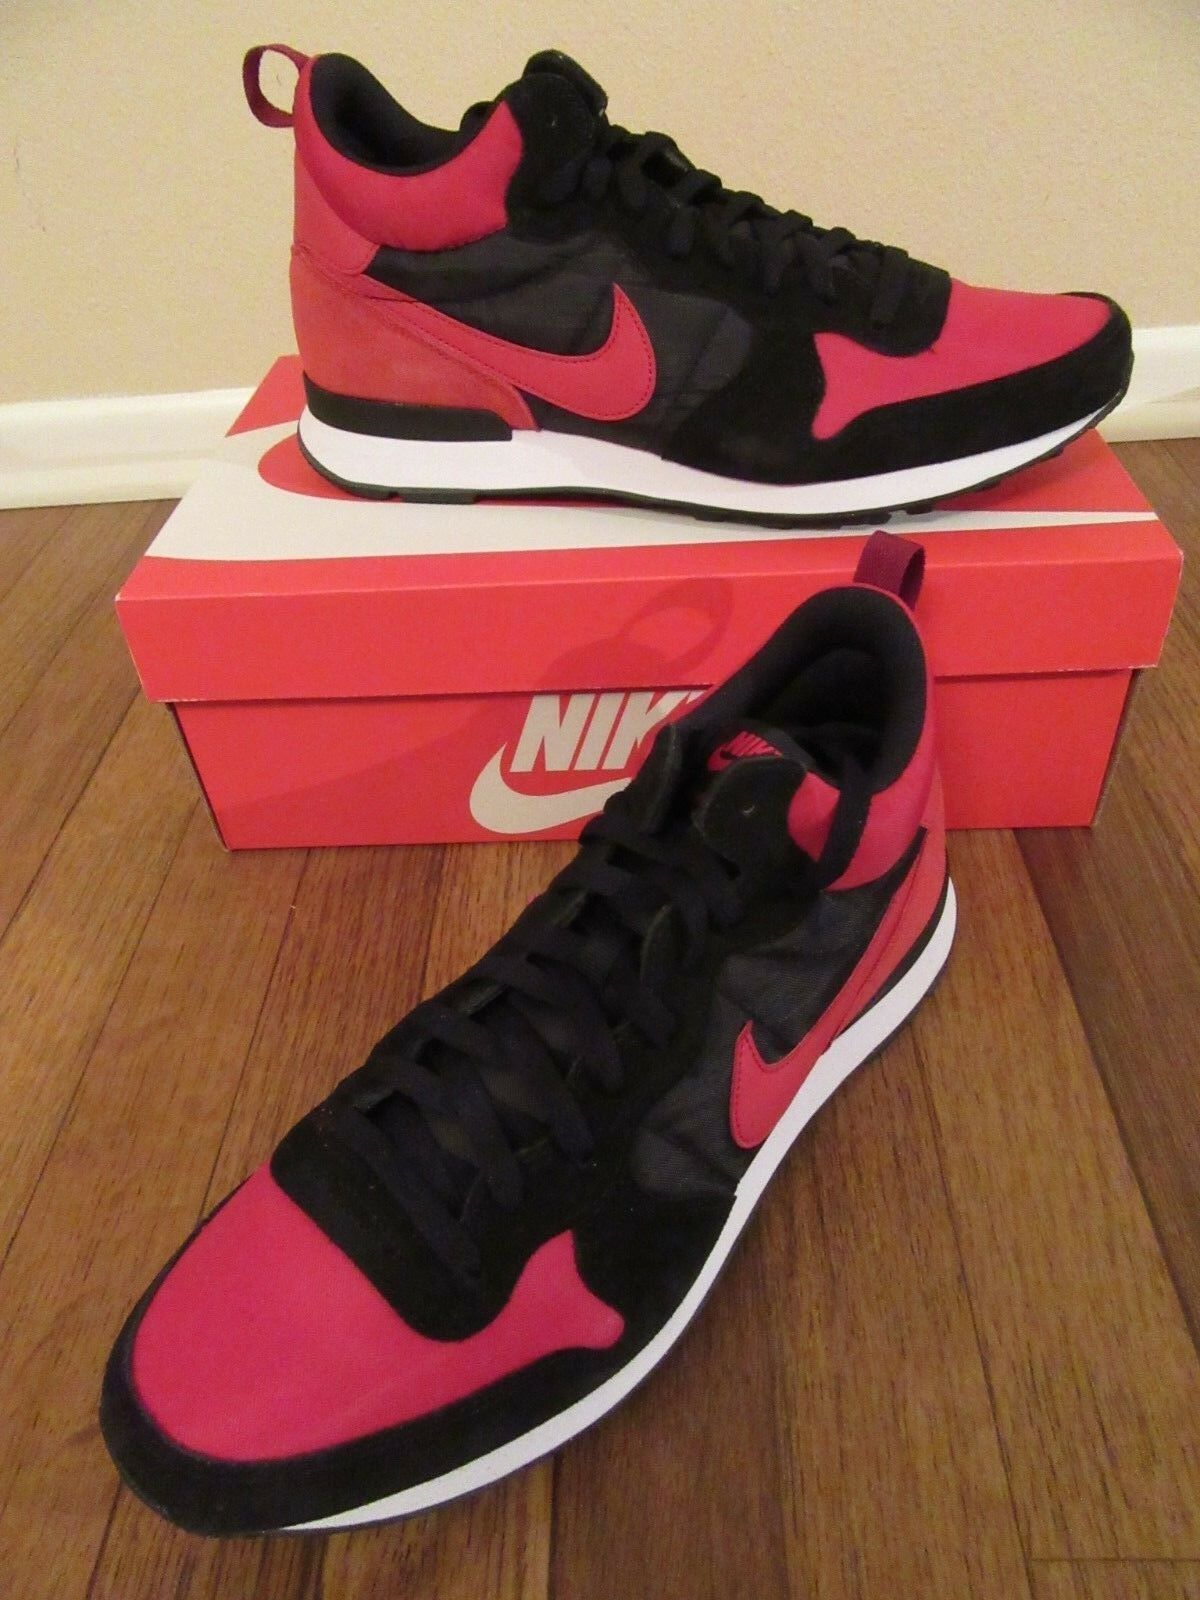 detailing 500c1 f450c Nike Internationalist Mid Size 11.5 Varsity Varsity Varsity Red Black White  682844 606 New NIB 0581a8